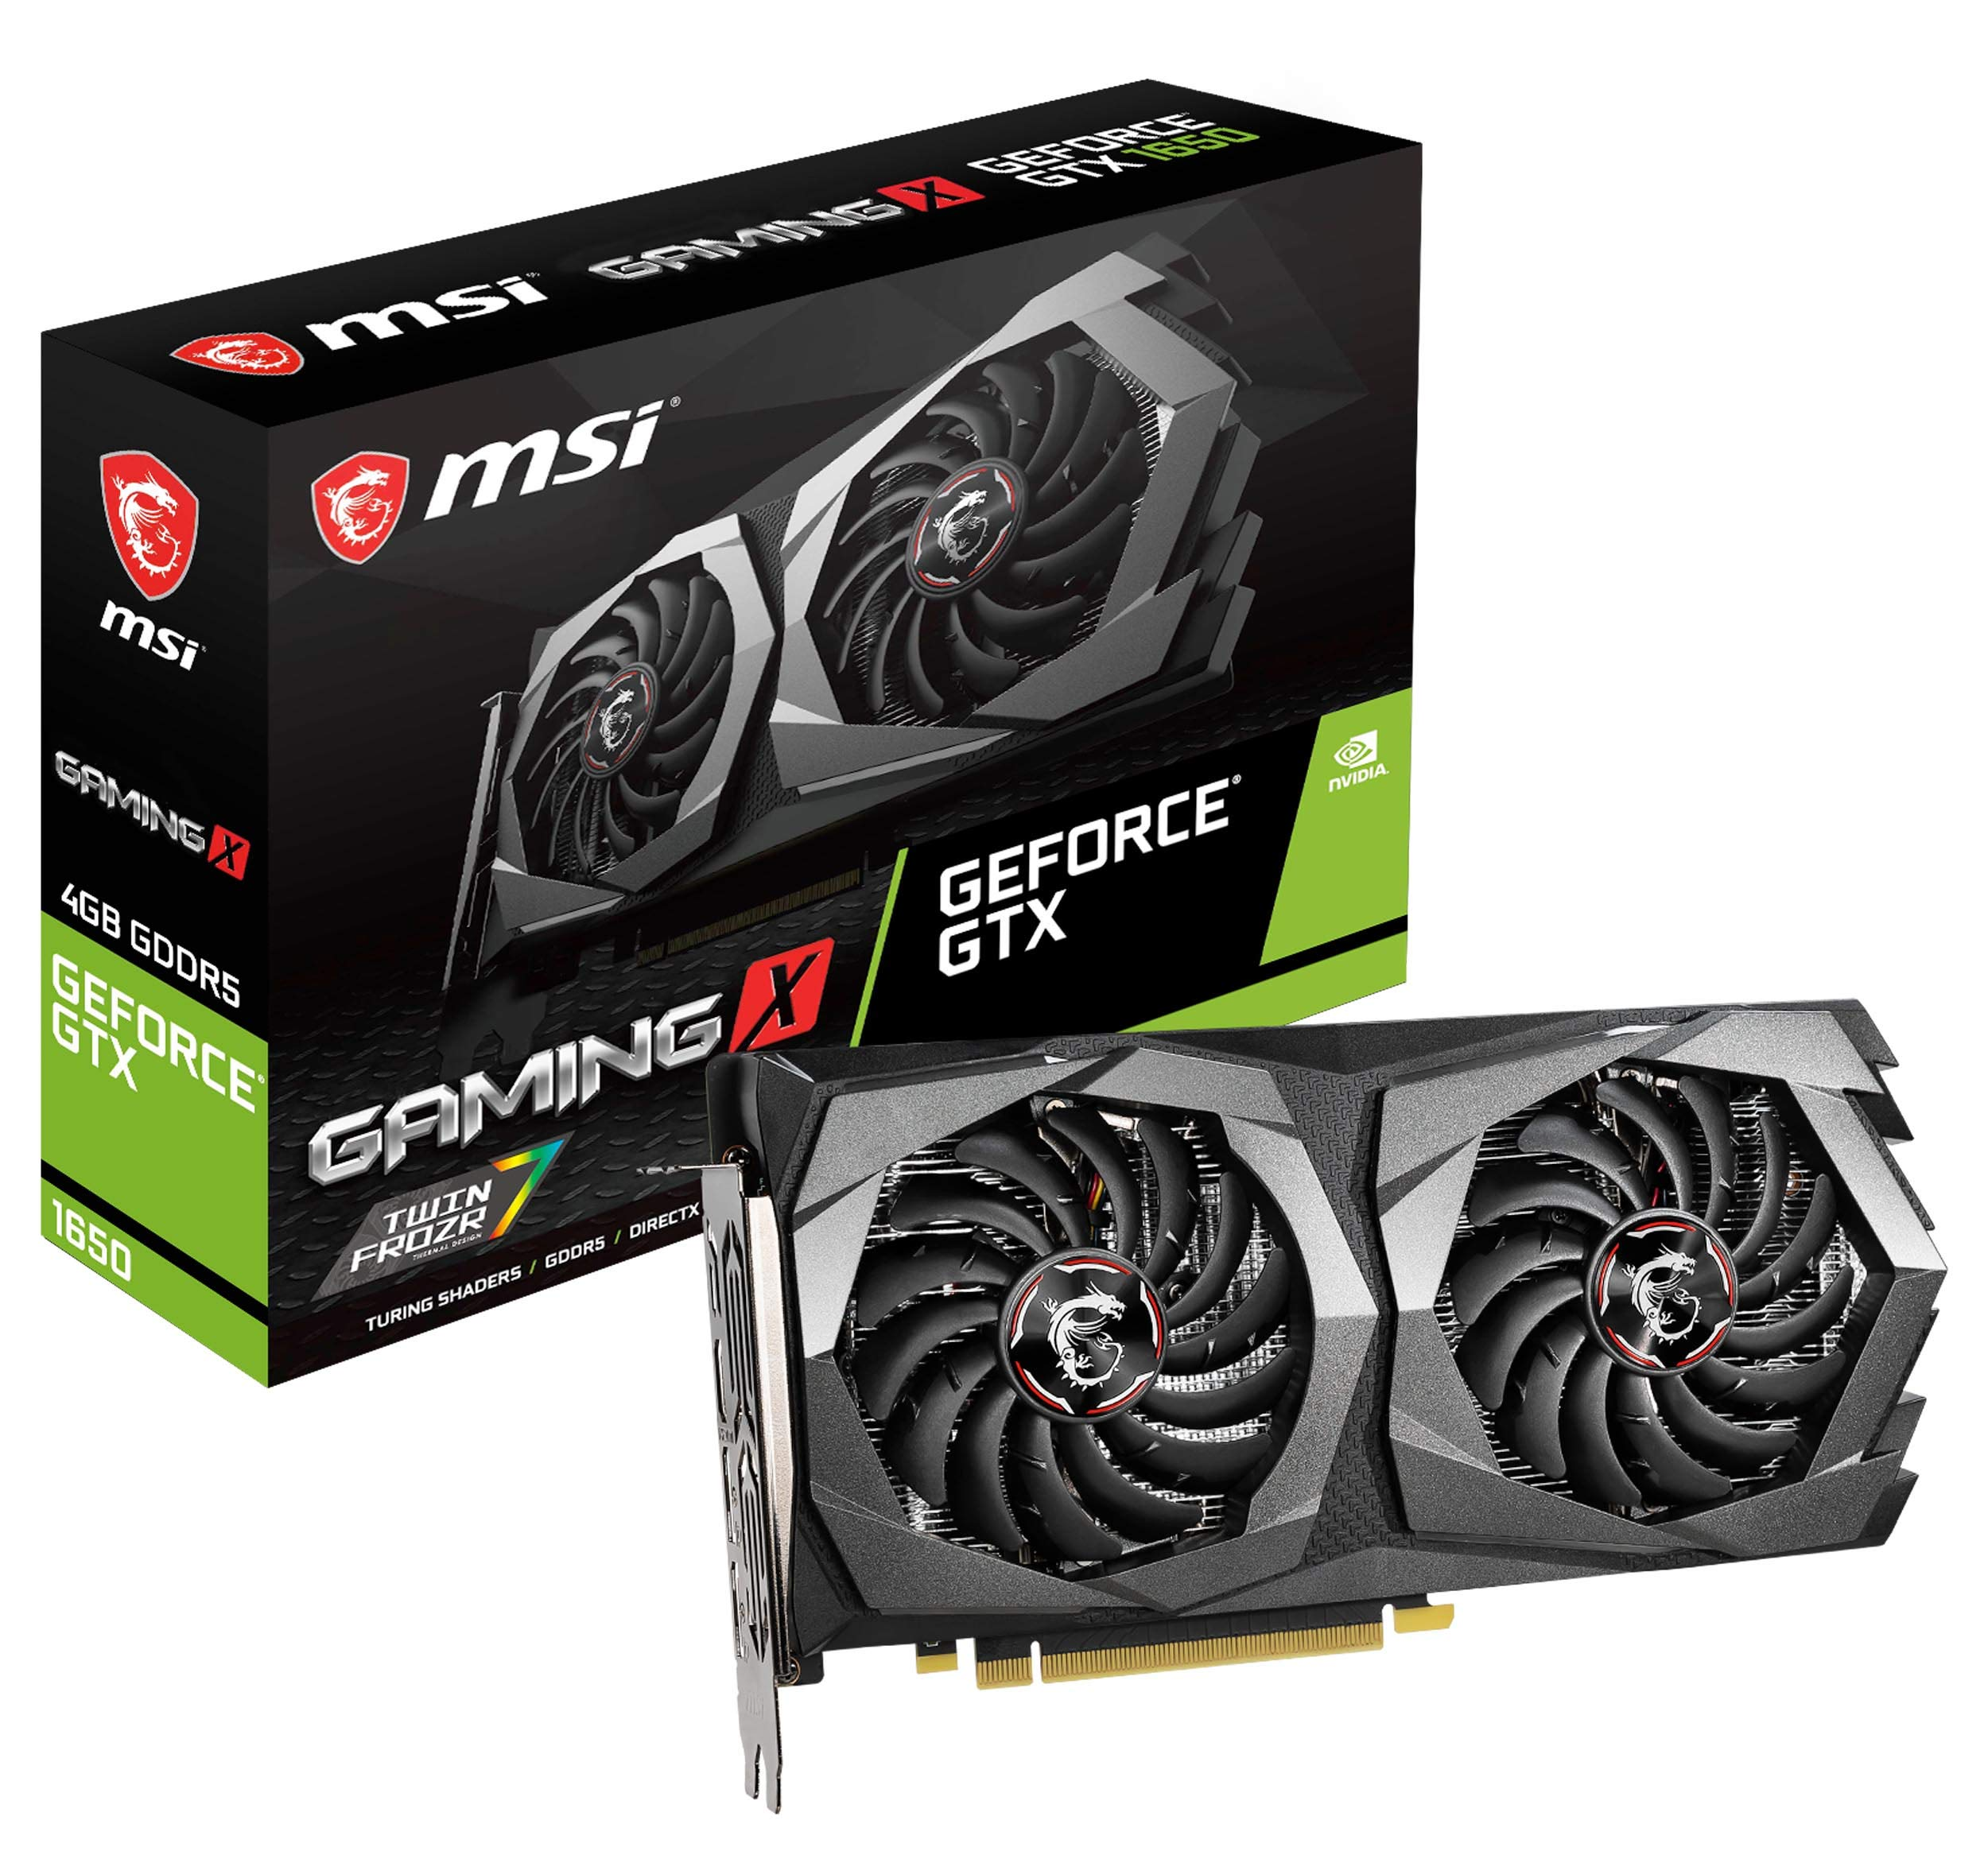 MSI Gaming GeForce GTX 1650 128-Bit HDMI/DP 4GB GDRR5 HDCP Support DirectX 12 Dual Fan VR Ready OC Graphics Card (GTX 1650 Gaming X 4G) by MSI